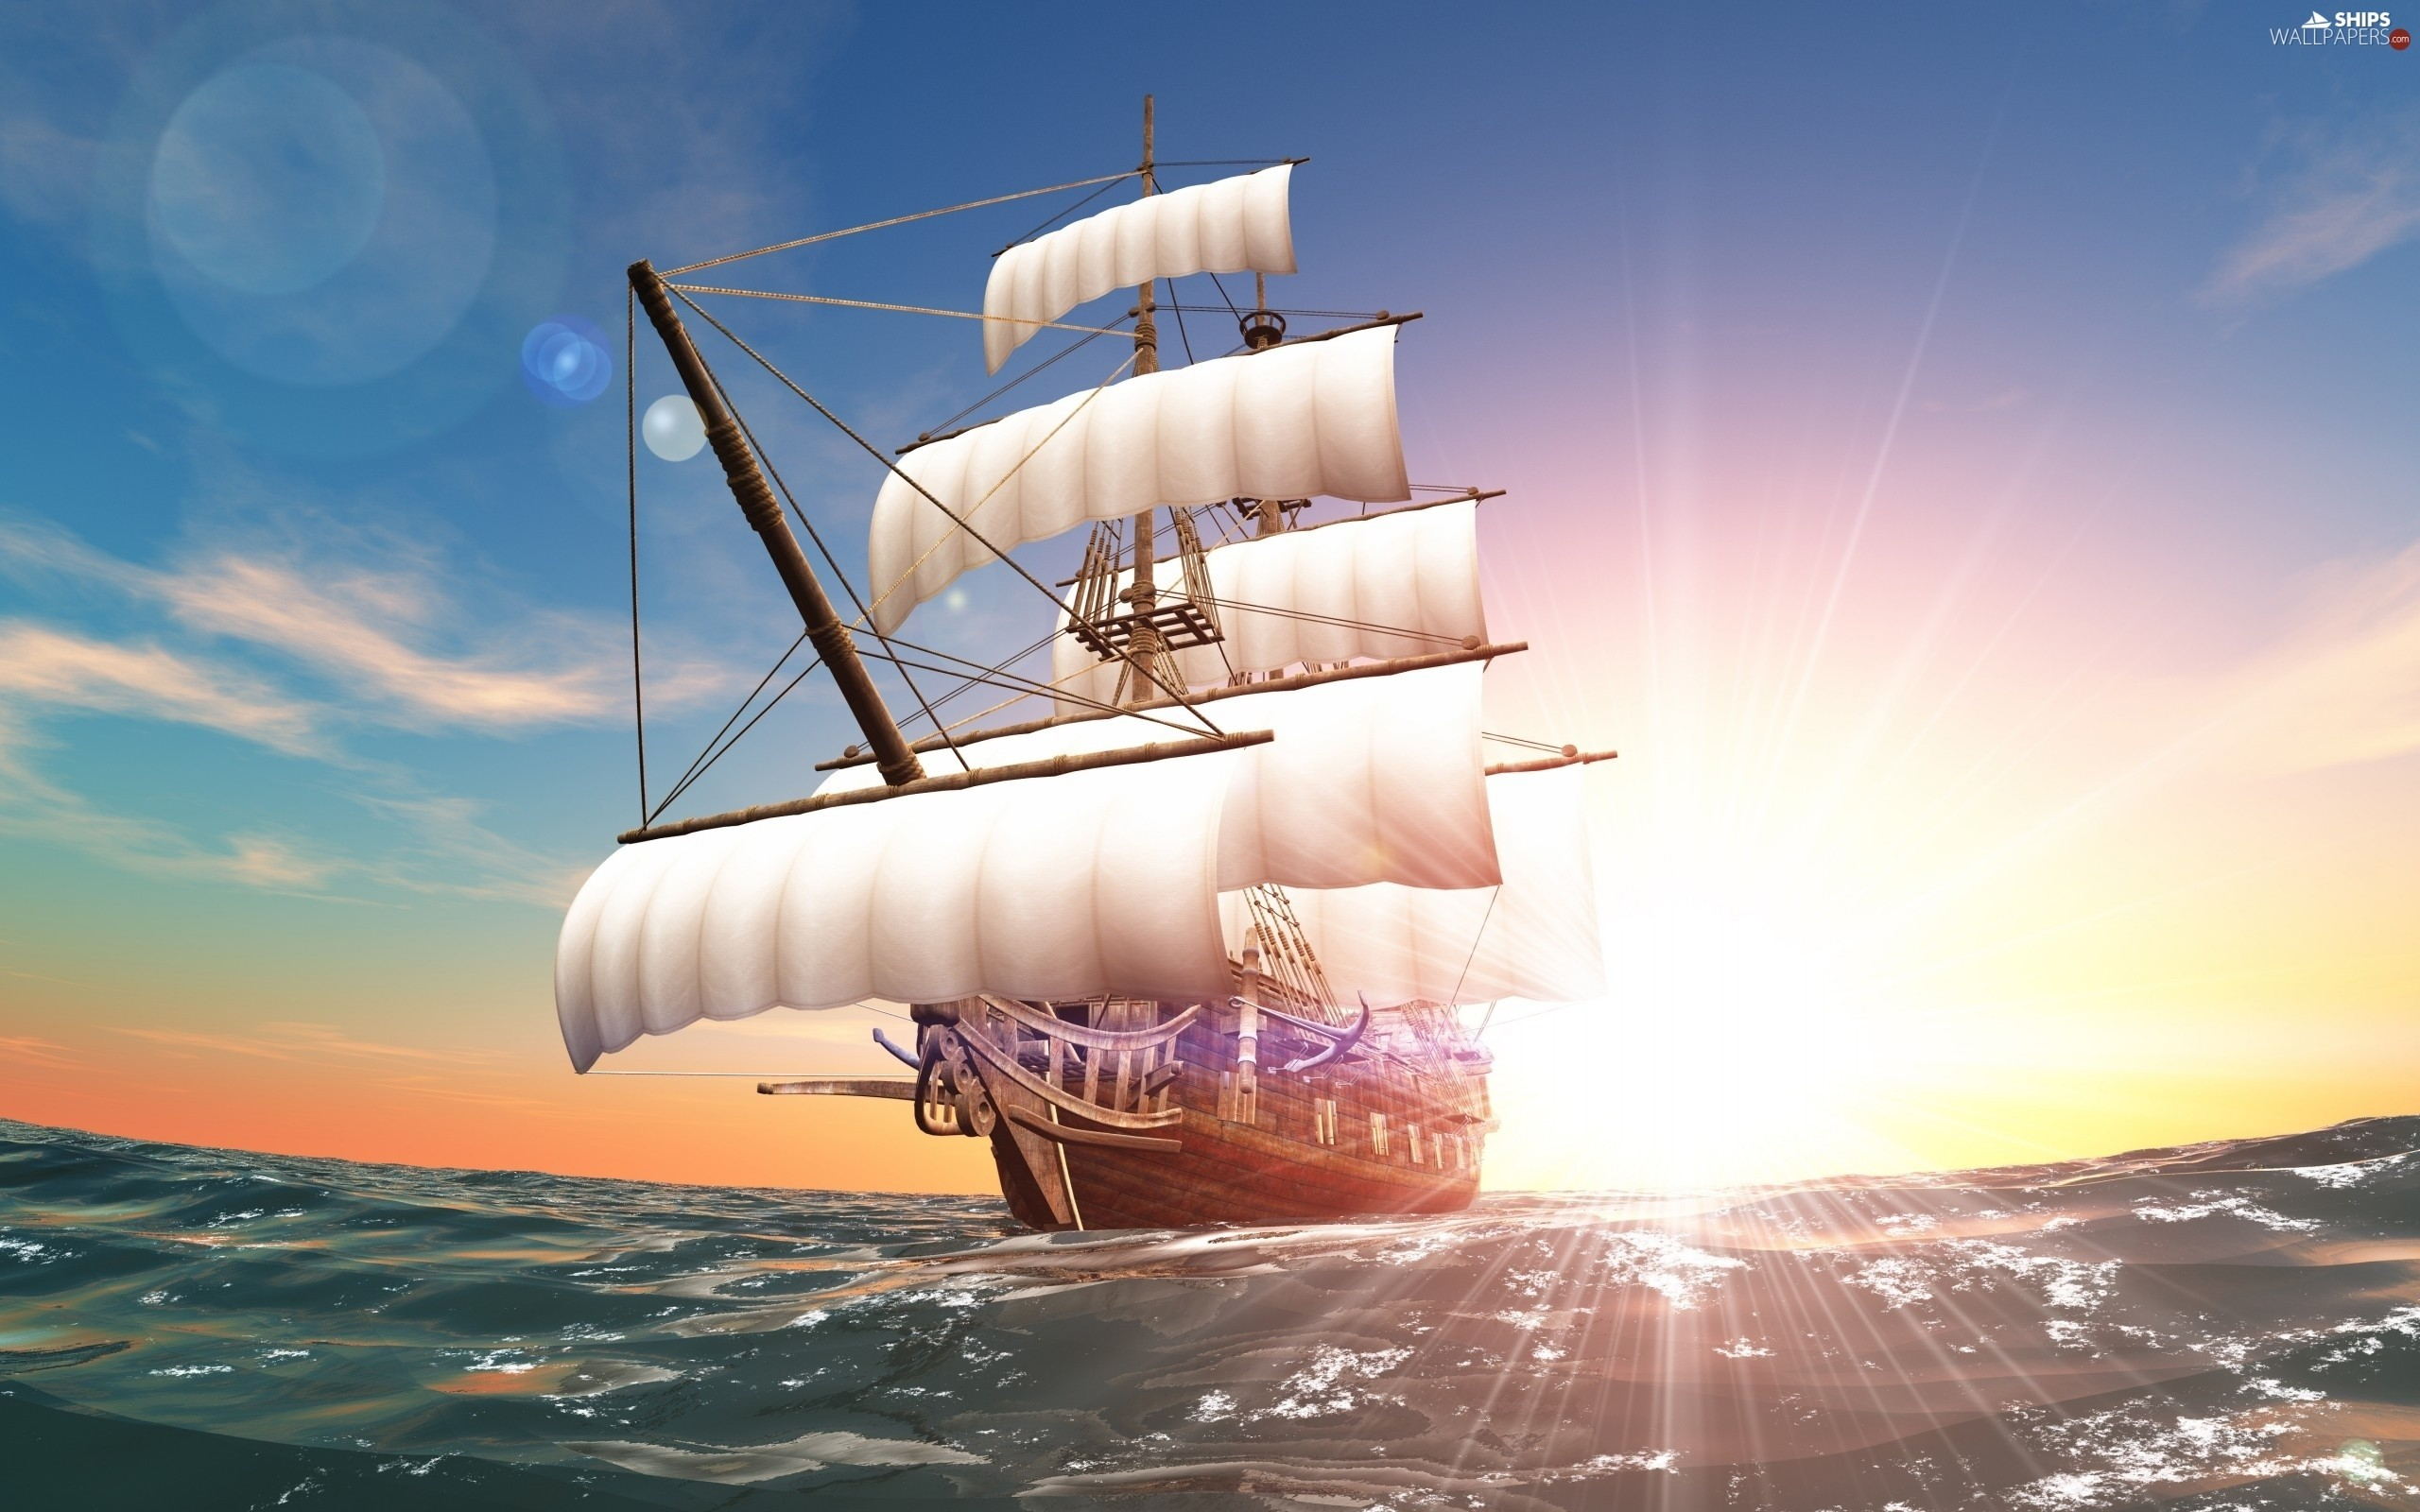 sailing vessel, Great Sunsets, sea – Ships wallpapers .